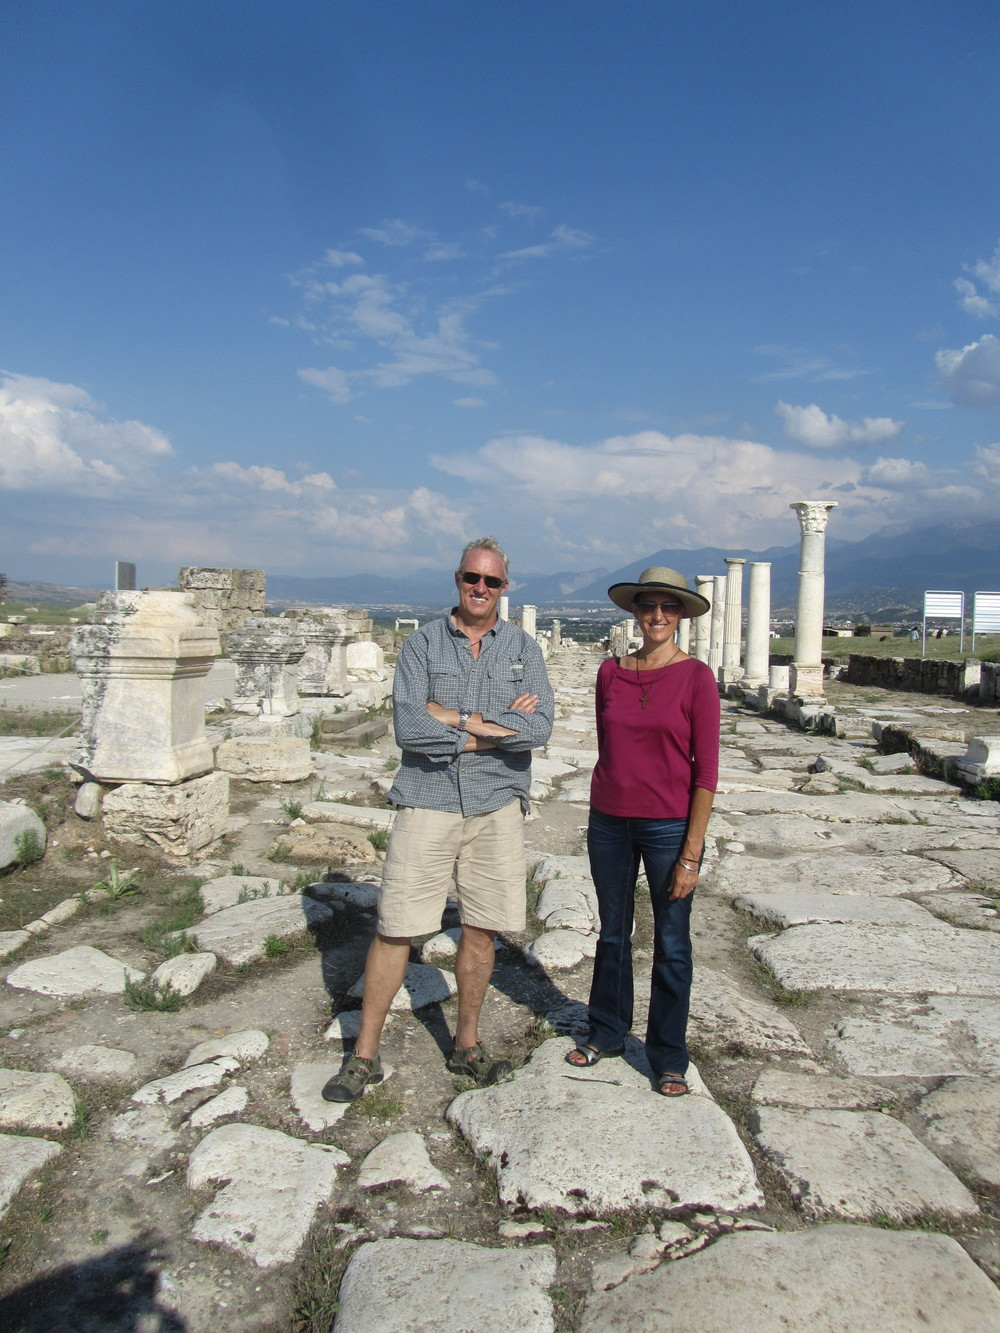 Walking on the ancient streets of Laodicea in central Turkey